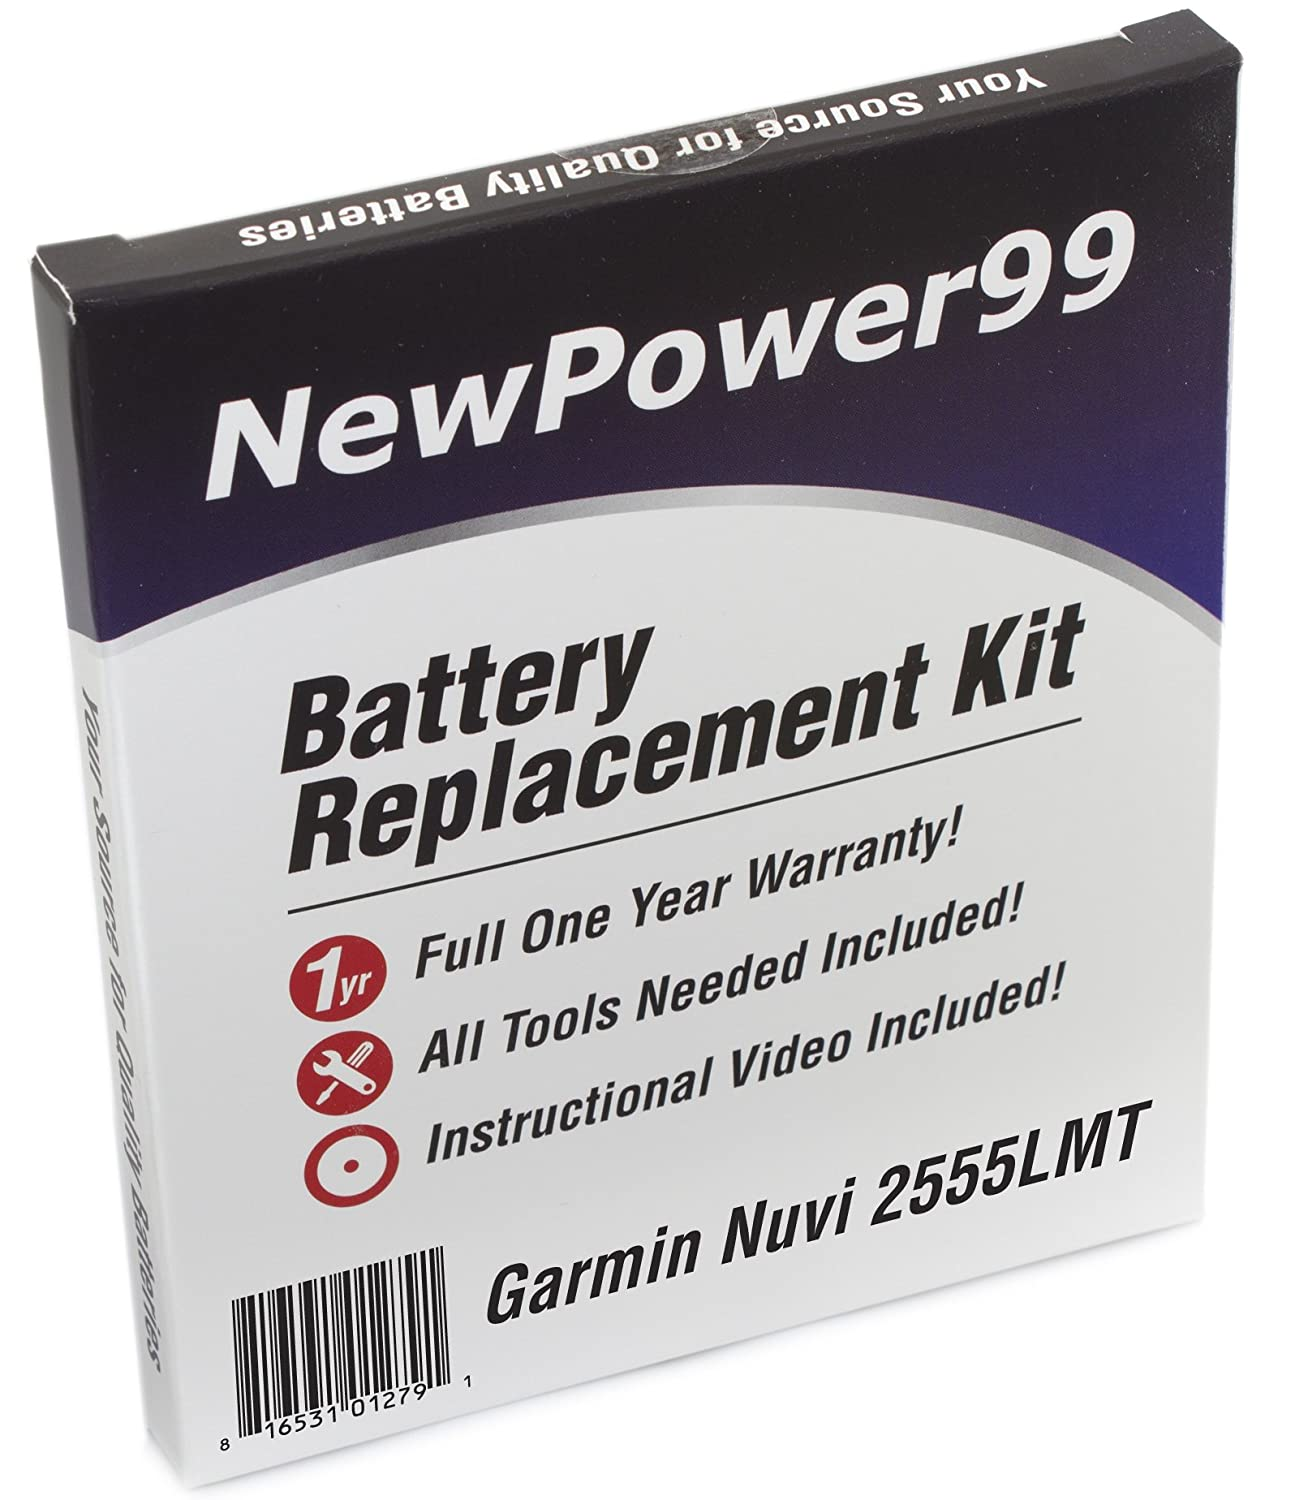 Battery Replacement Kit for Garmin Nuvi 2555LMT with Installation Video, Tools, and Extended Life Battery. NewPower99